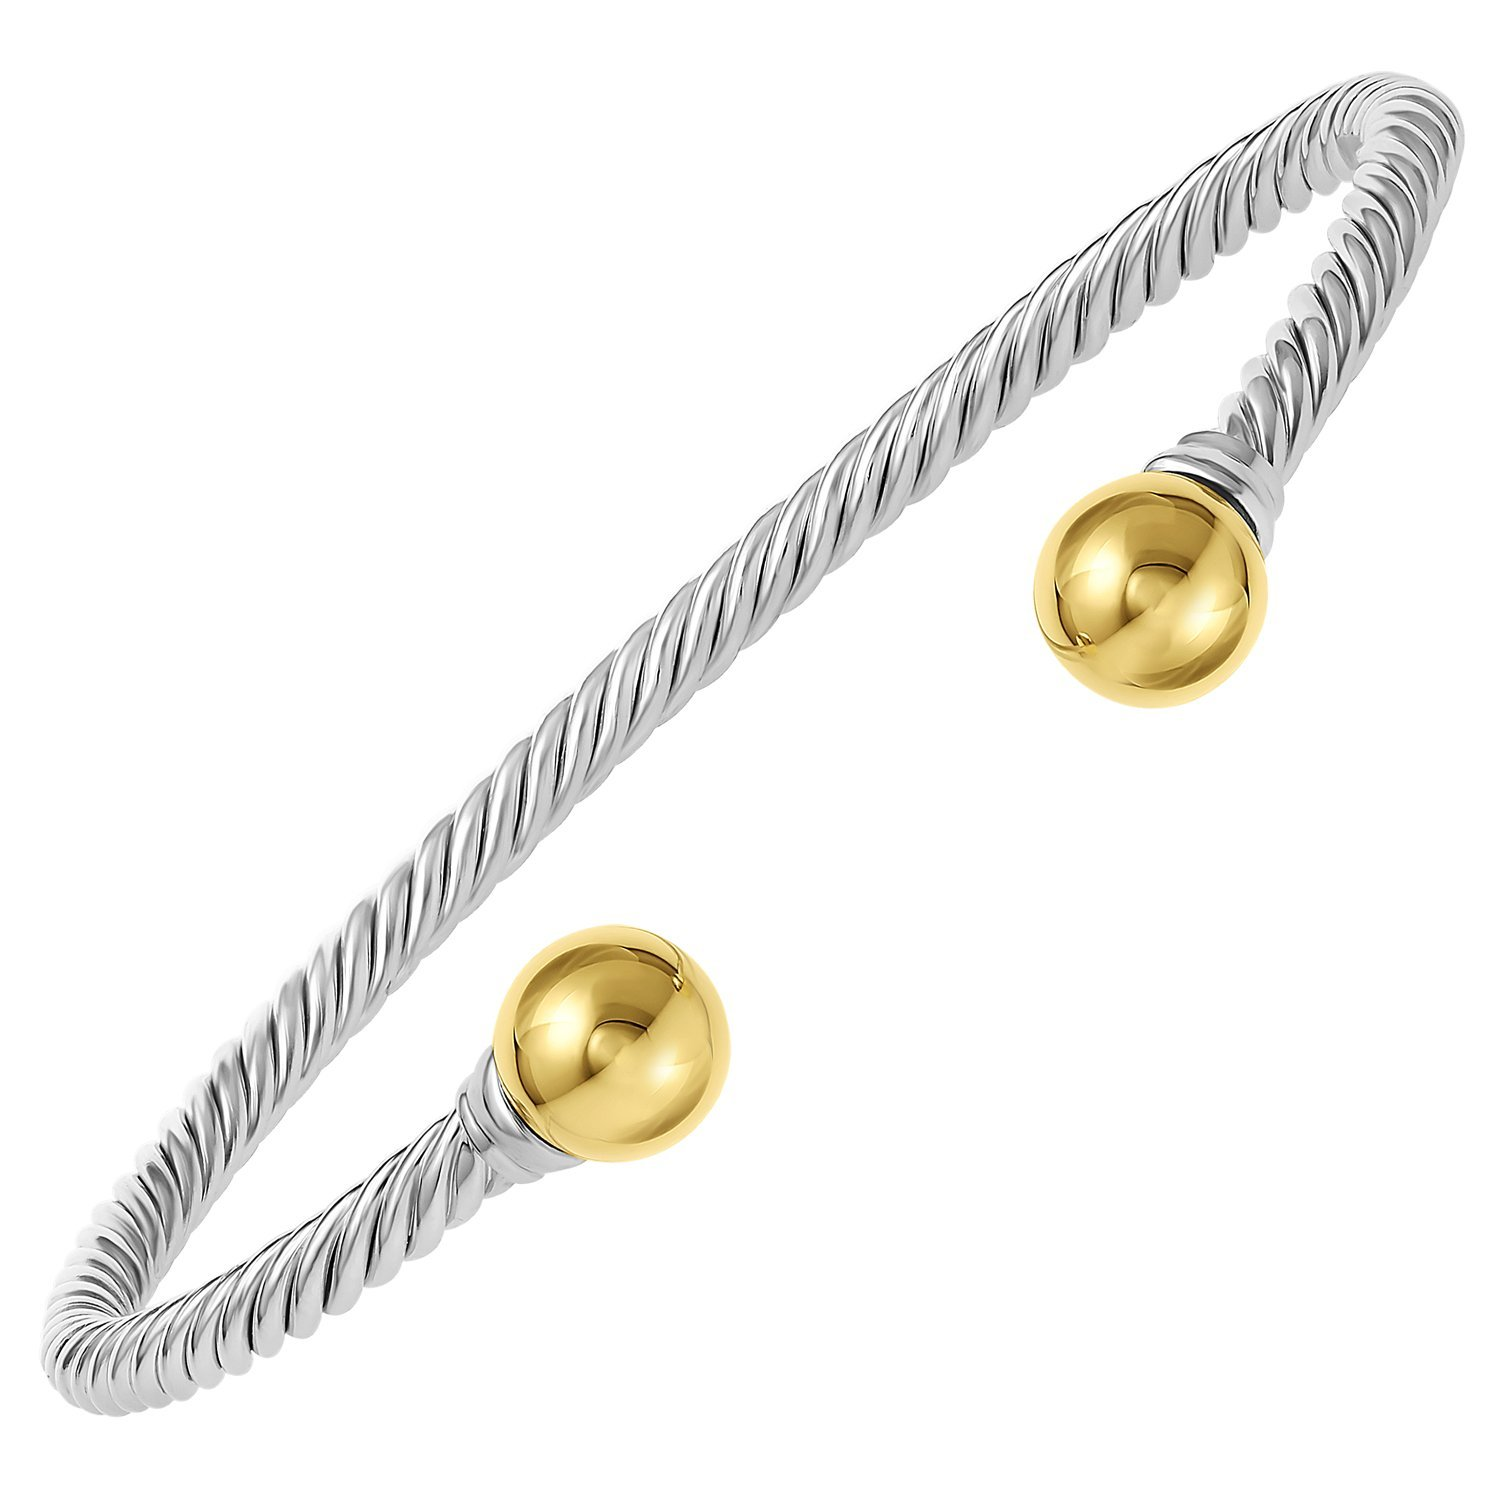 women huierjew twisted product charms bangle bracelets gold for alloy bracelet dhgate com from chains